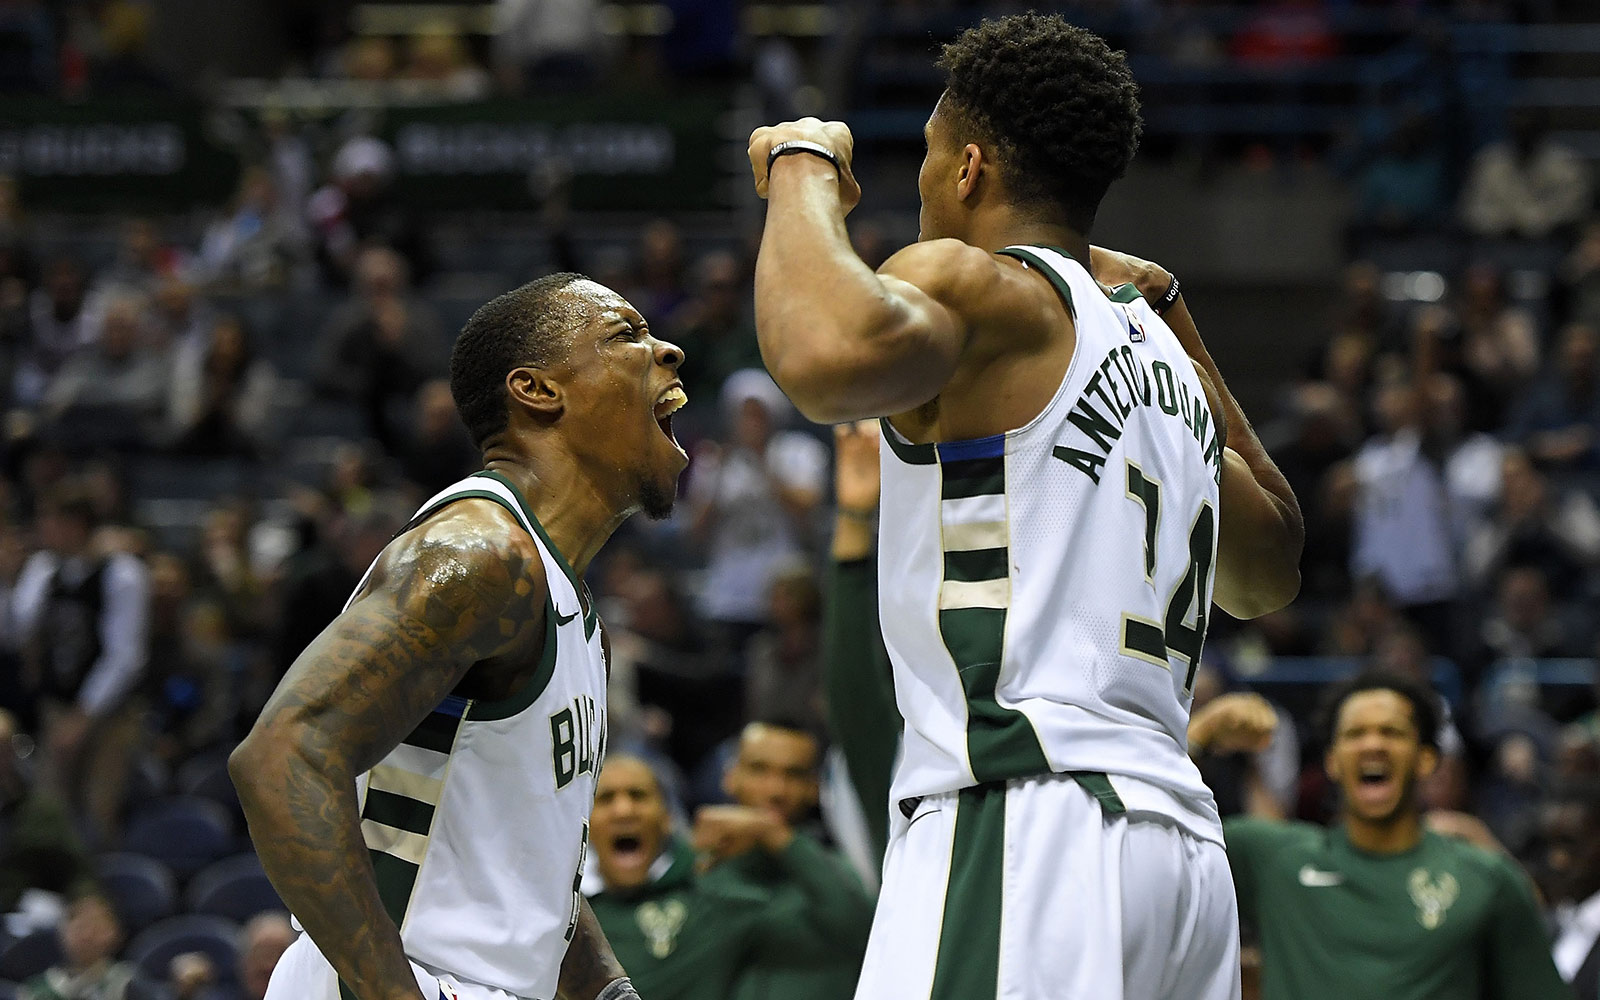 Eric Bledsoe and Giannis Antetokounmpo